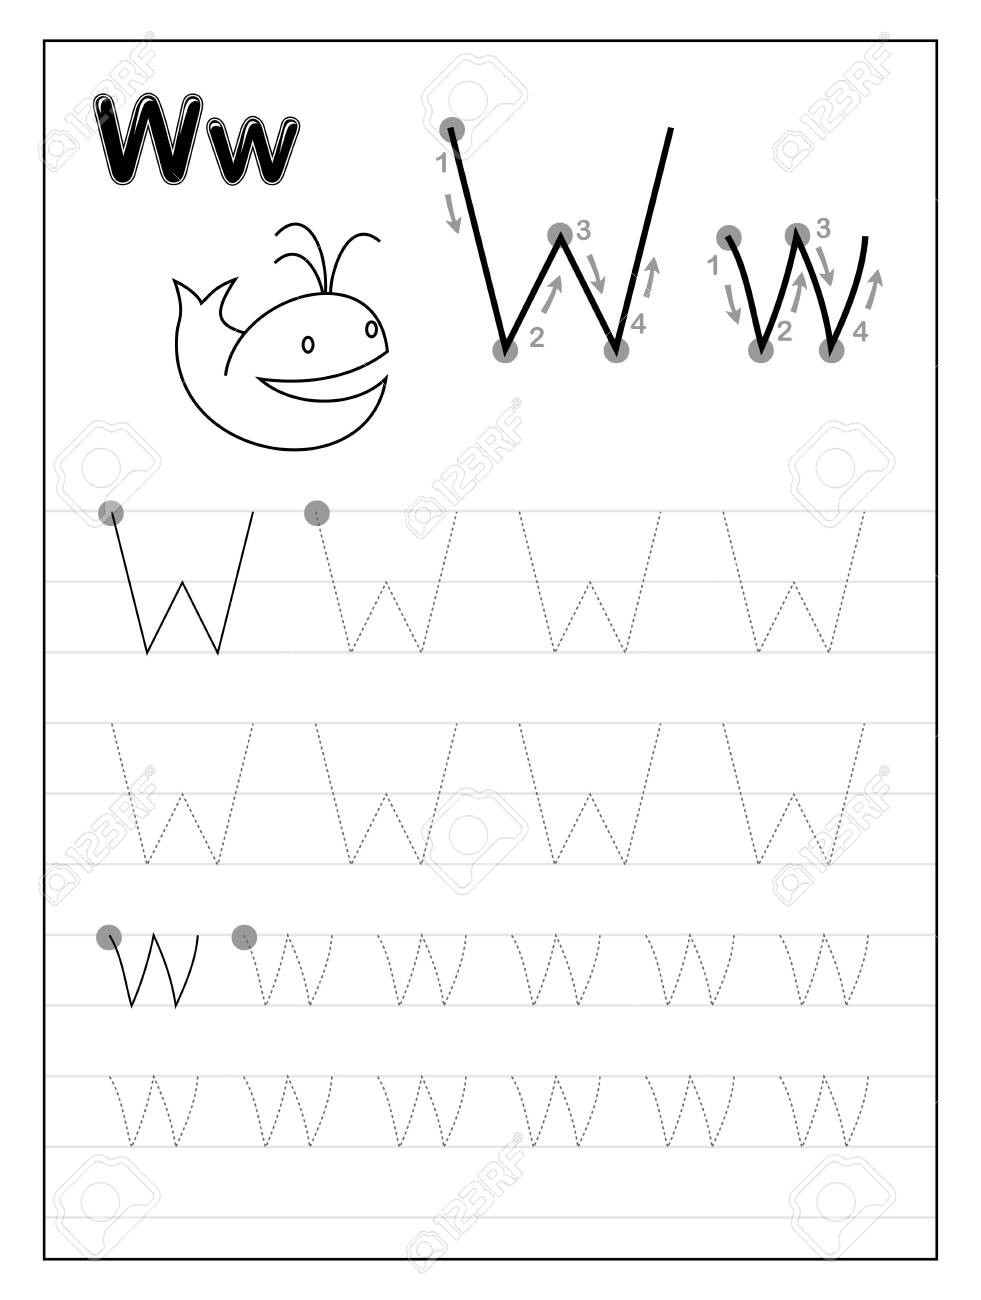 Letter W Worksheets for Preschoolers Worksheet Free Printable Letterracing Worksheets for